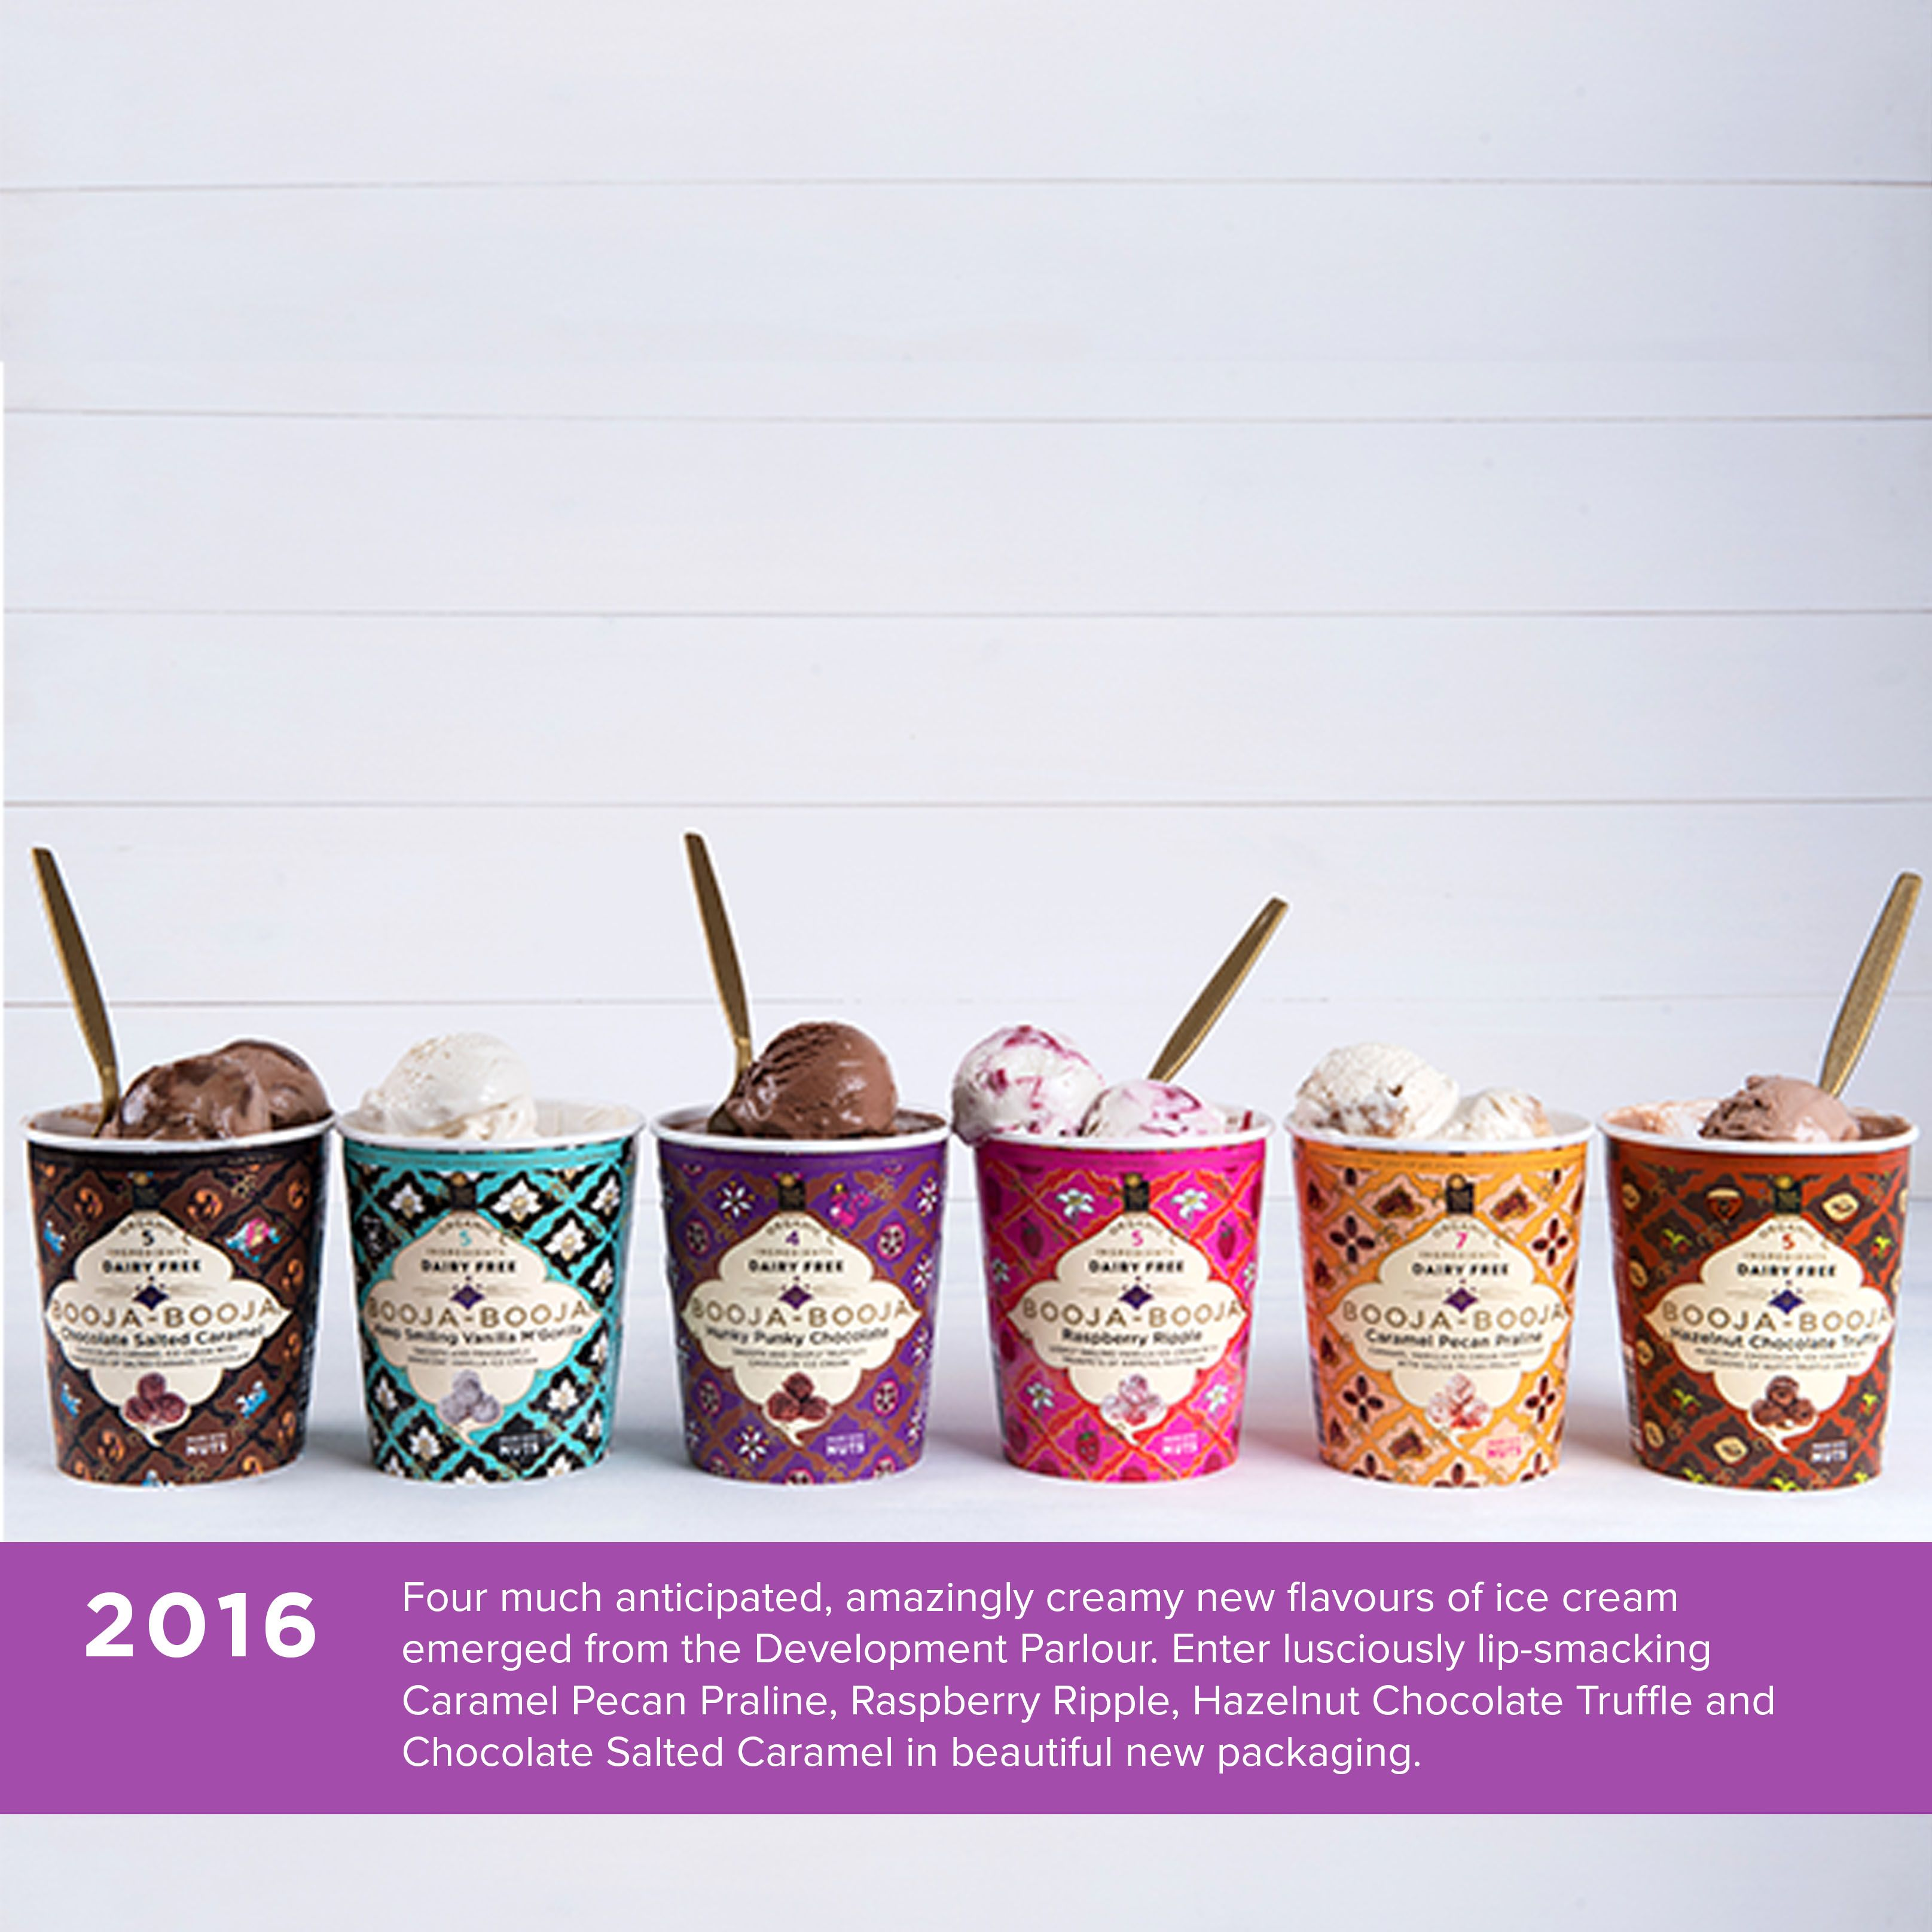 Our Story Booja Booja Ice Cream Flavors Chocolate